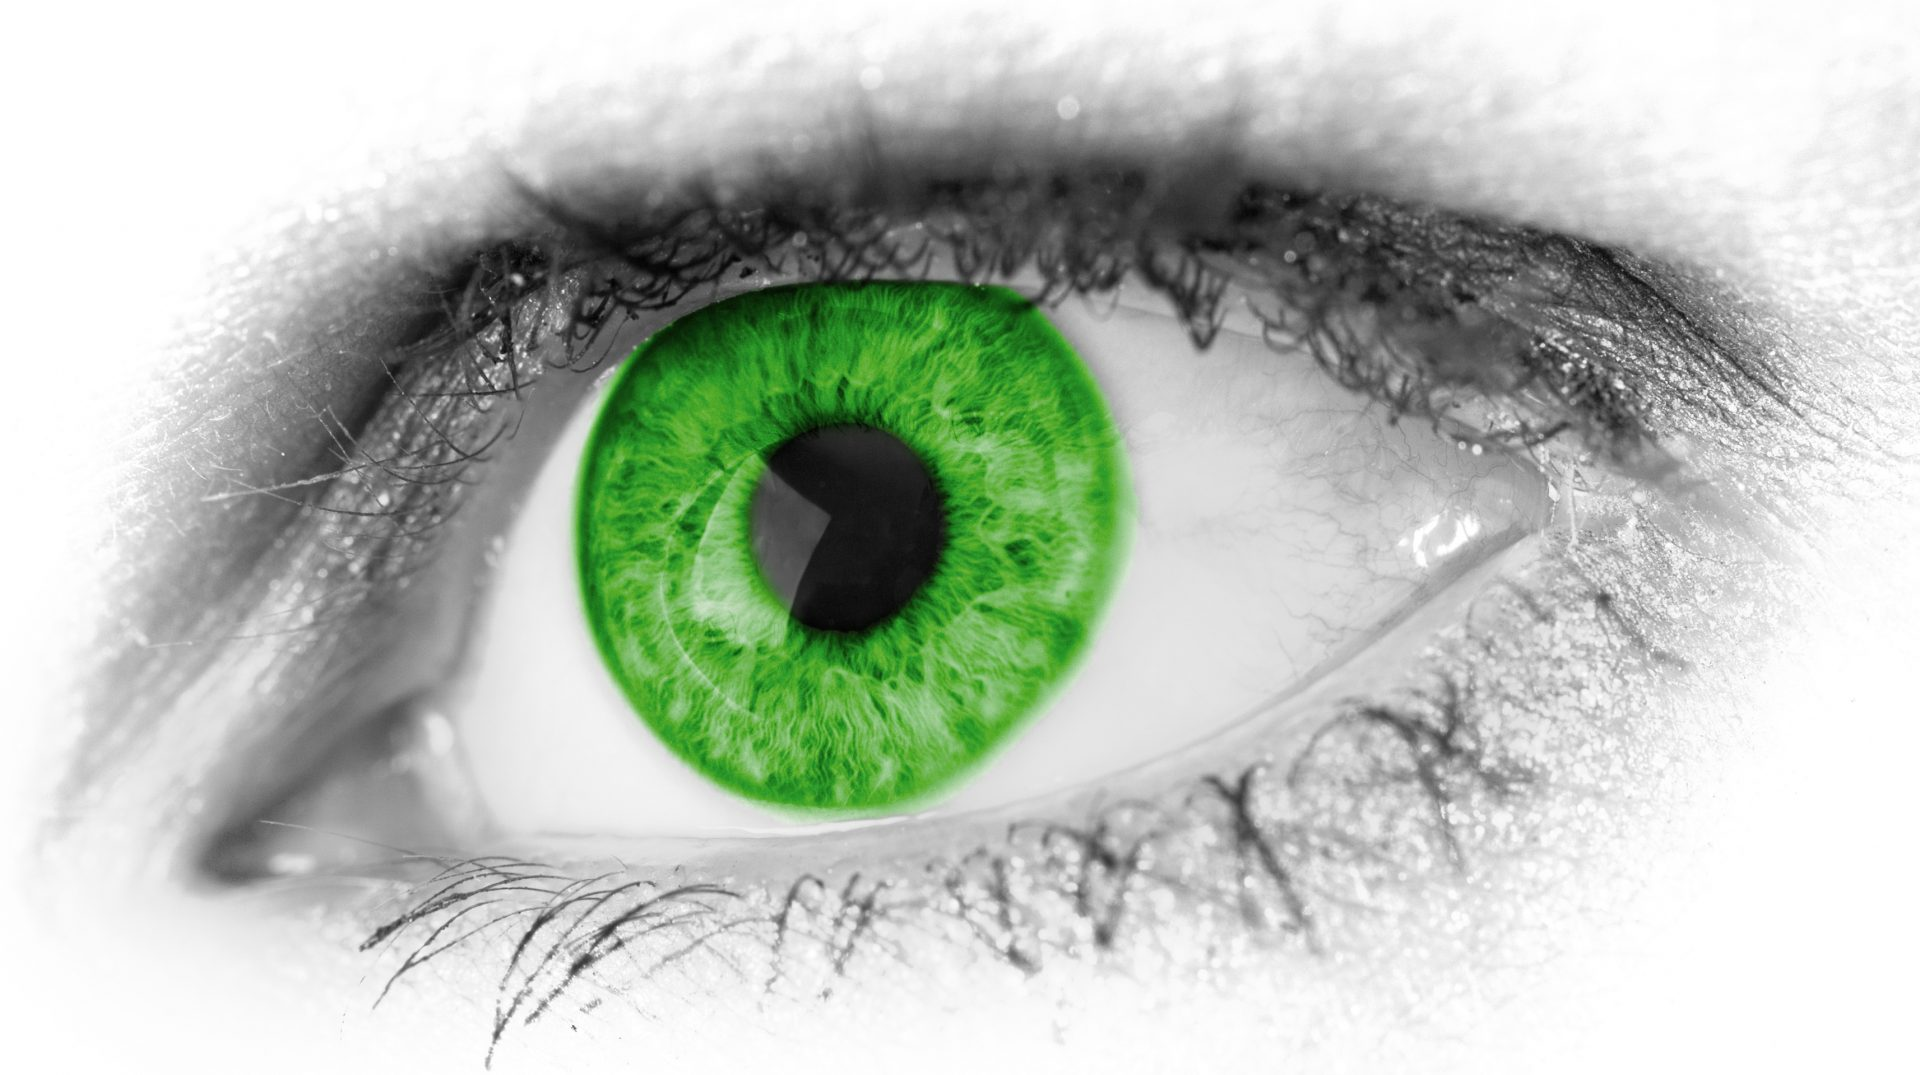 cropped-green_eye_detail_198802-1.jpg